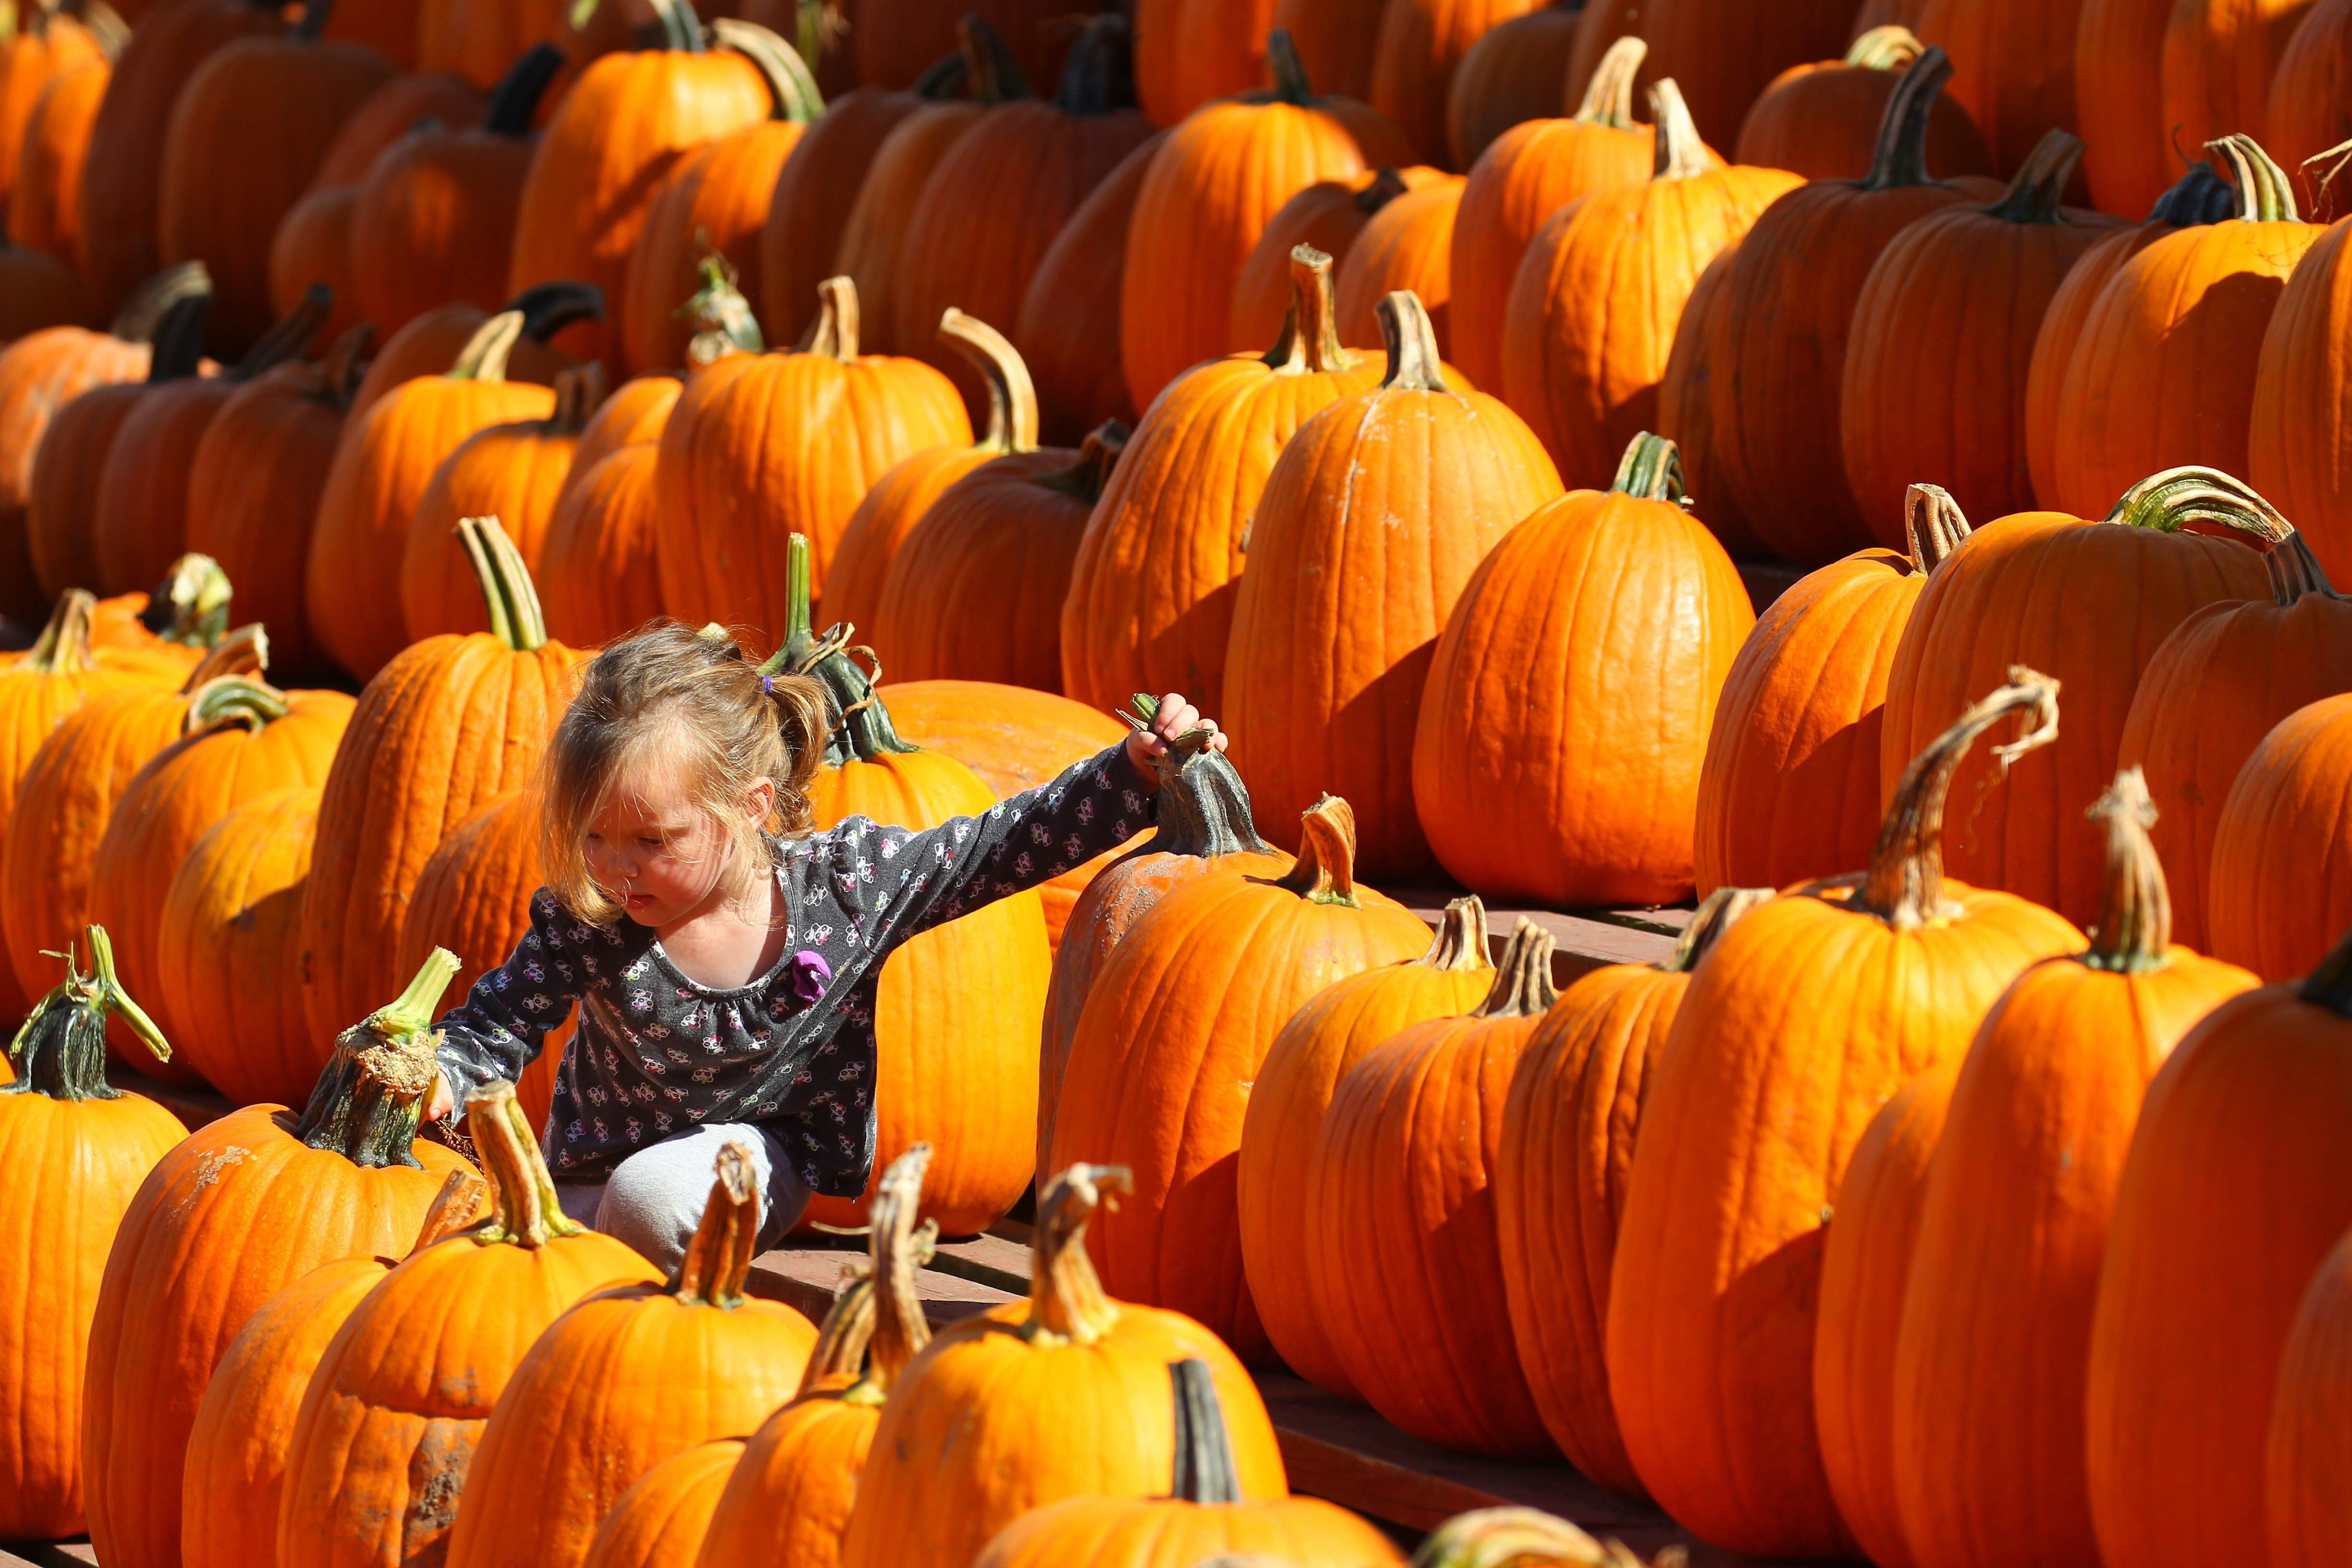 Madison Nelson climbs through a mountain of pumpkins at 20th annual farm festivities at the Great Pumpkin Farm in Clarence on Sunday. See a photo gallery at BuffaloNews.com.